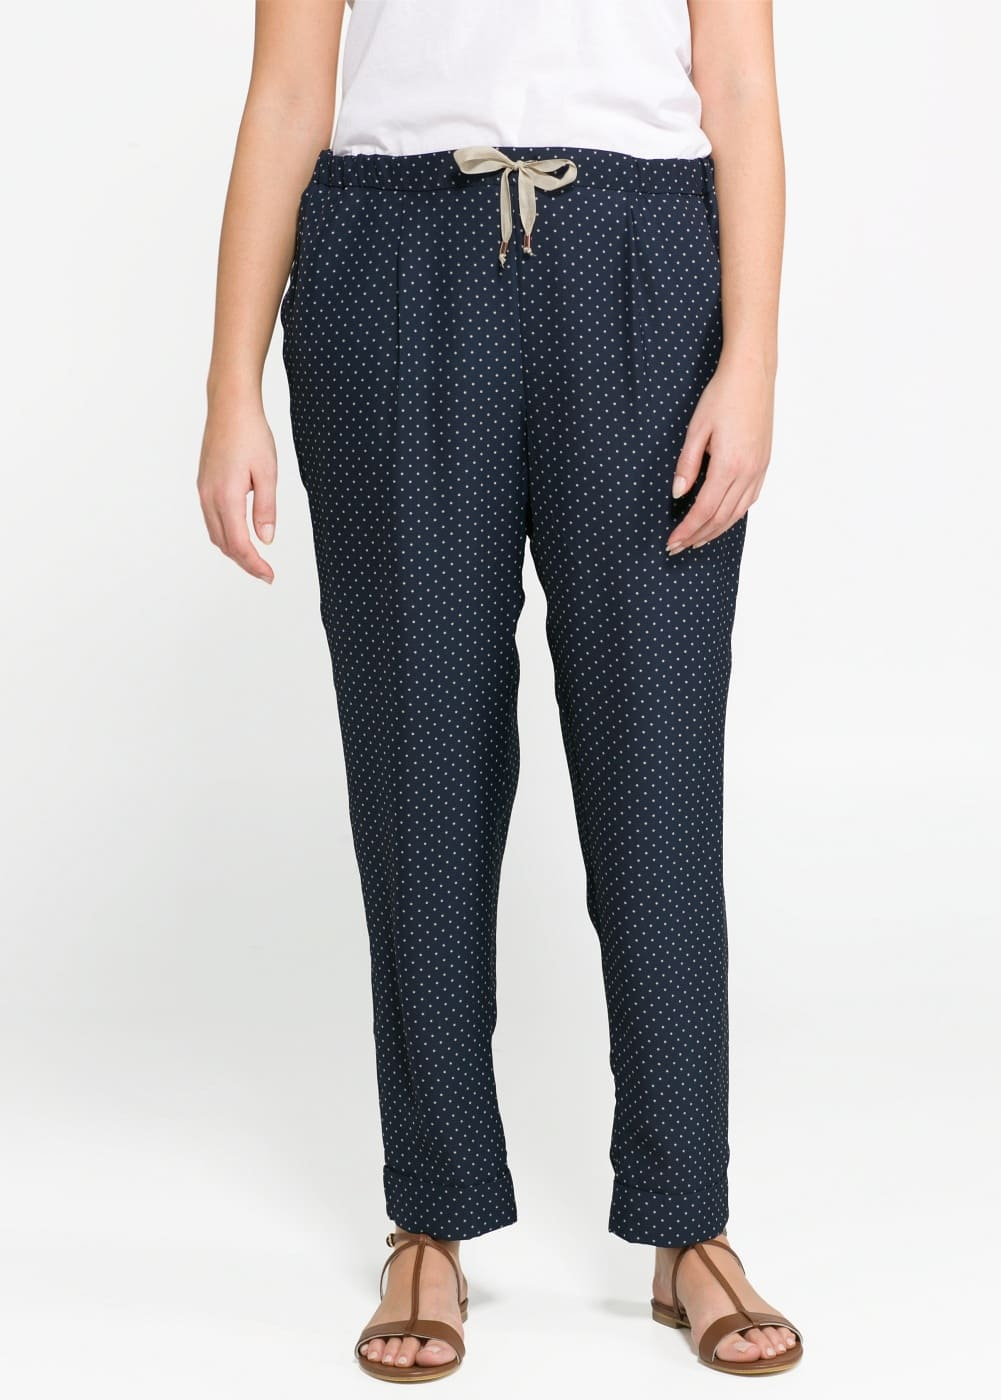 Polka-dot trousers